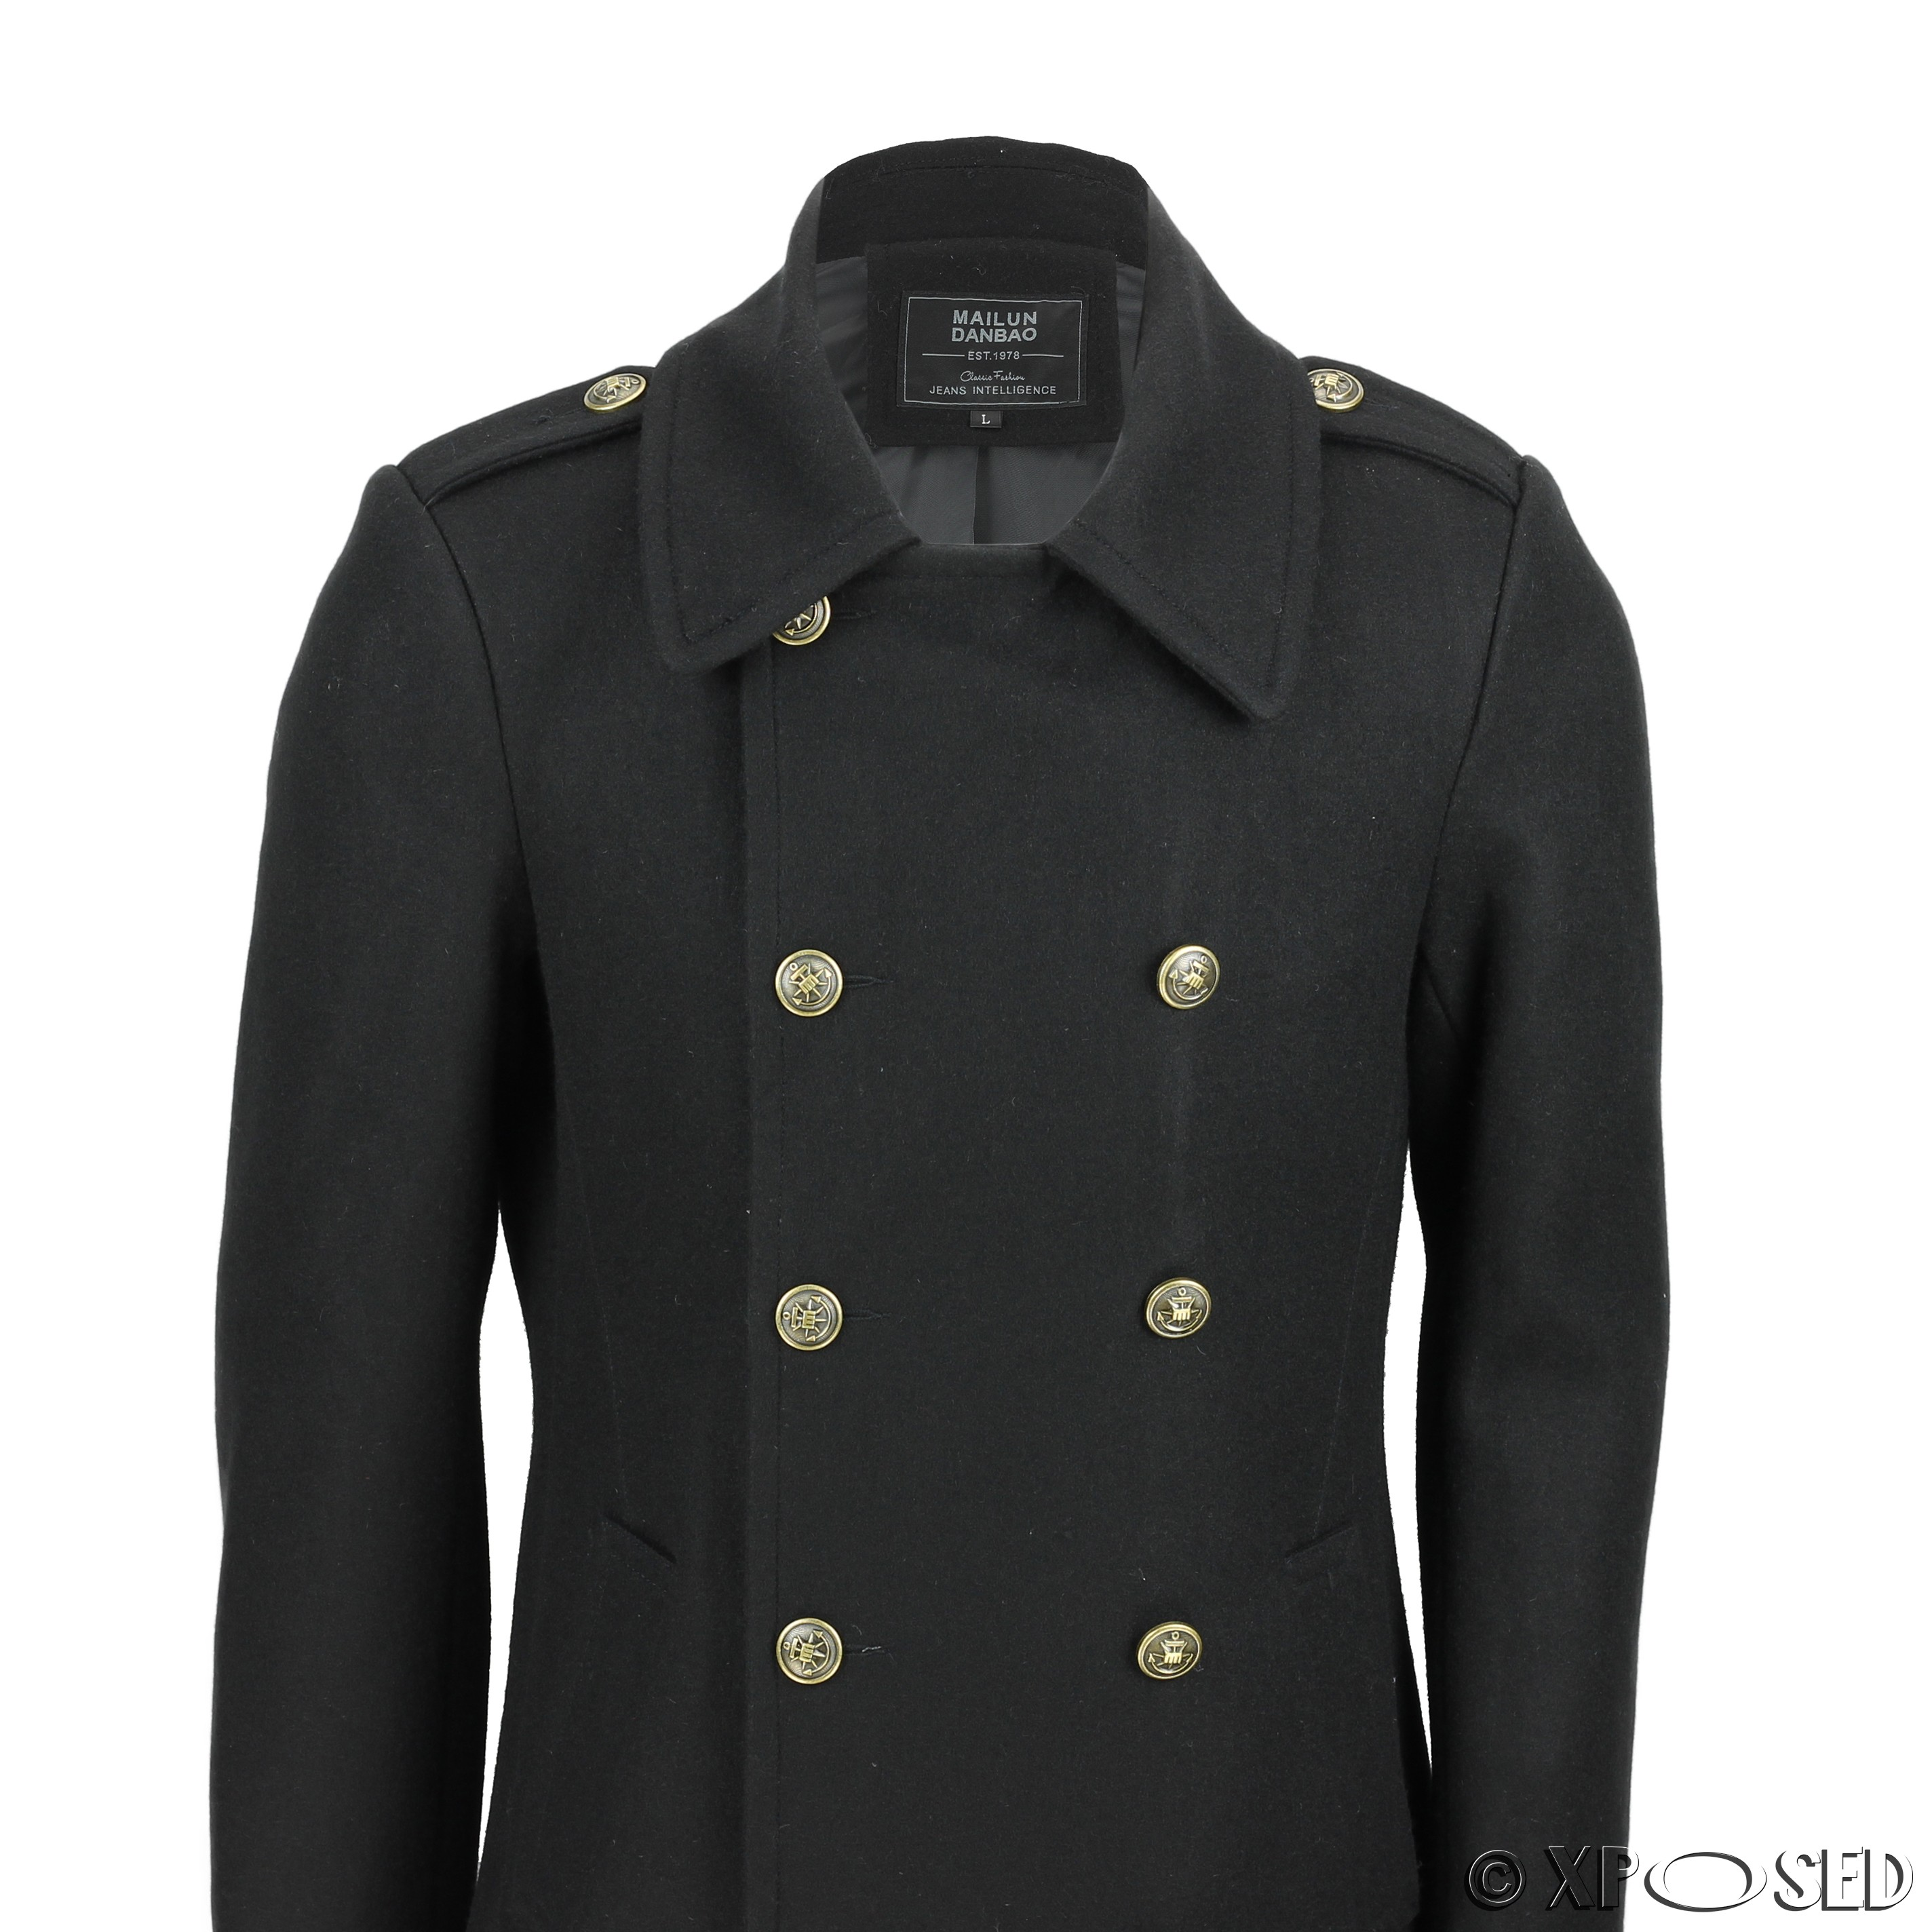 Mens Vintage Military Style Wool Mix Double Breasted Jacket Overcoat Black Navy Ebay